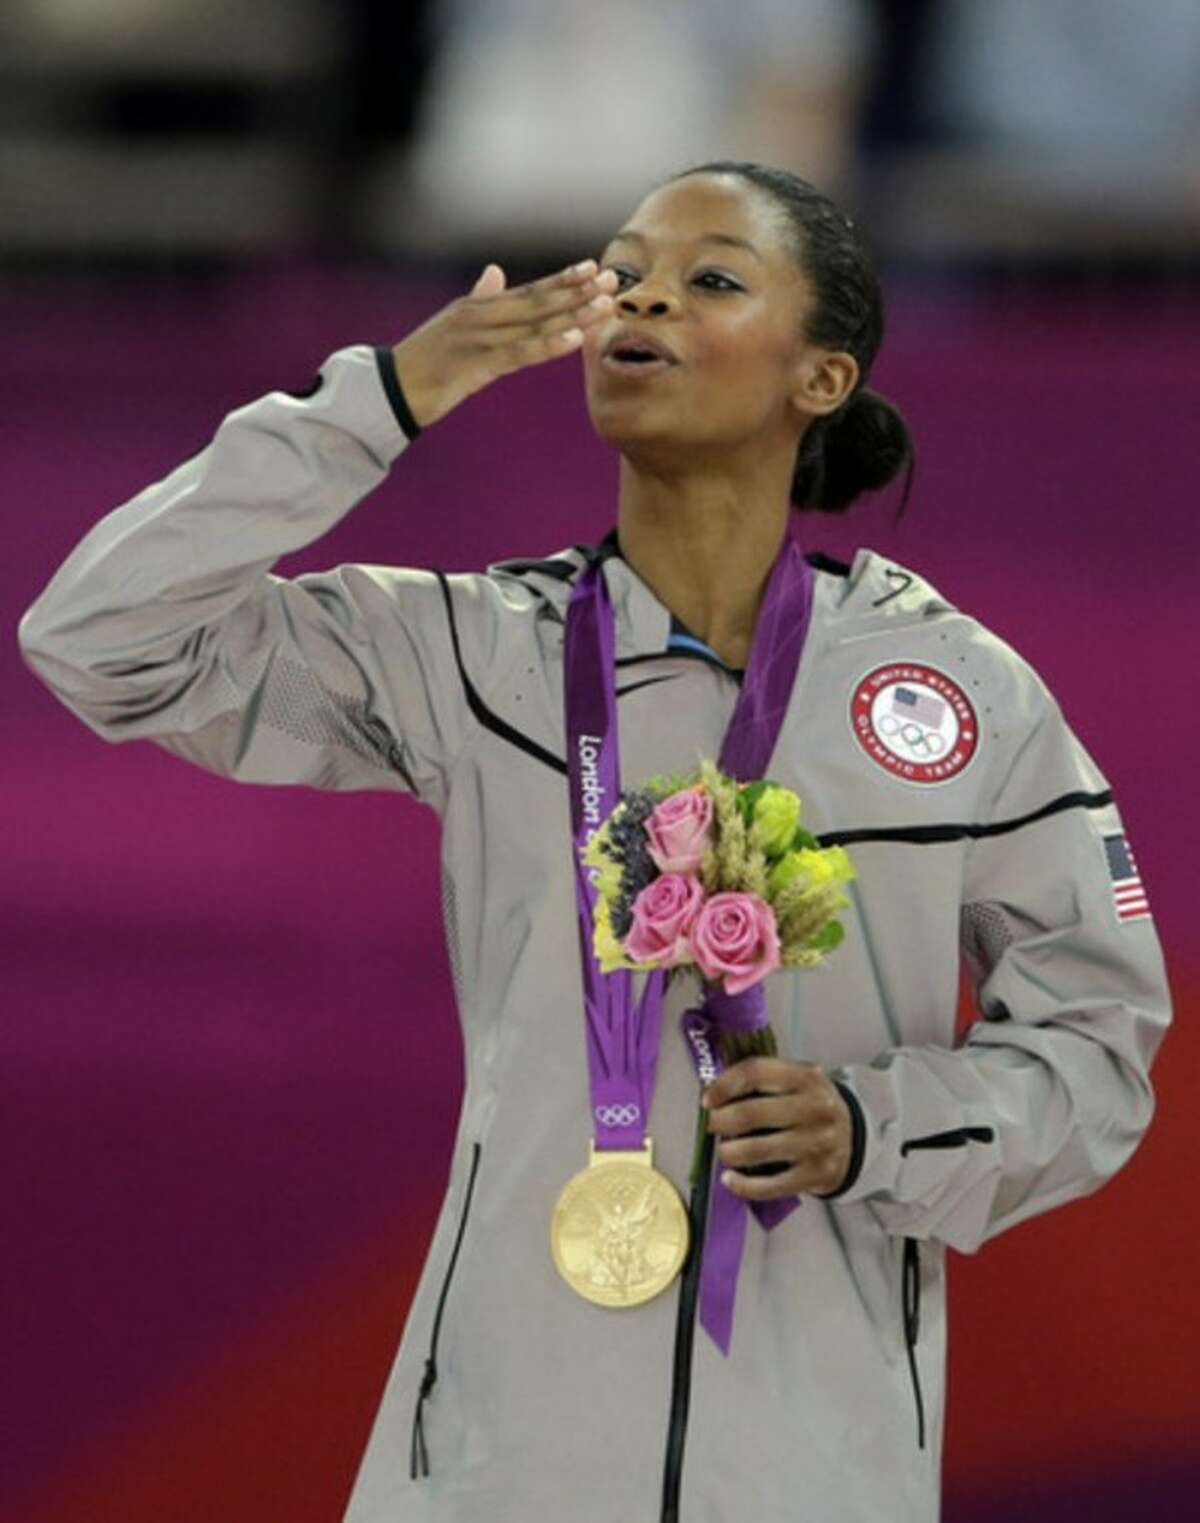 U.S. gymnast Gabrielle Douglas blows kisses to the crowd after receiving her gold medal during the artistic gymnastics women's individual all-around competition at the 2012 Summer Olympics, Thursday, Aug. 2, 2012, in London. (AP Photo/Gregory Bull)